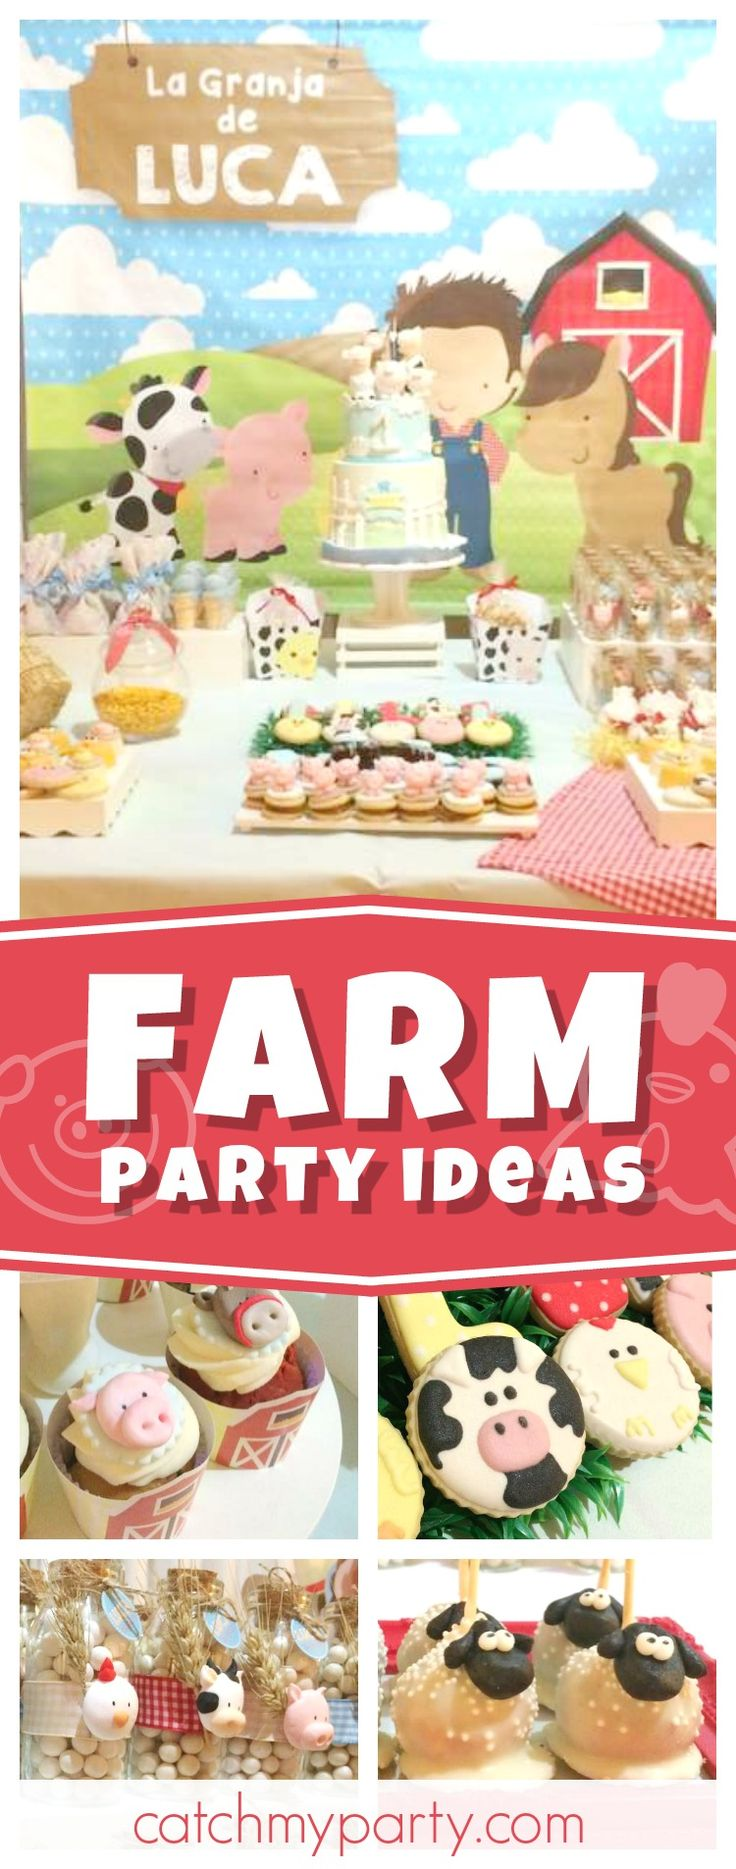 Check out this fun Farm 1st birthday party. The farm animal sweets are adorable!! See more party ideas and share yours at CatchMyParty.com